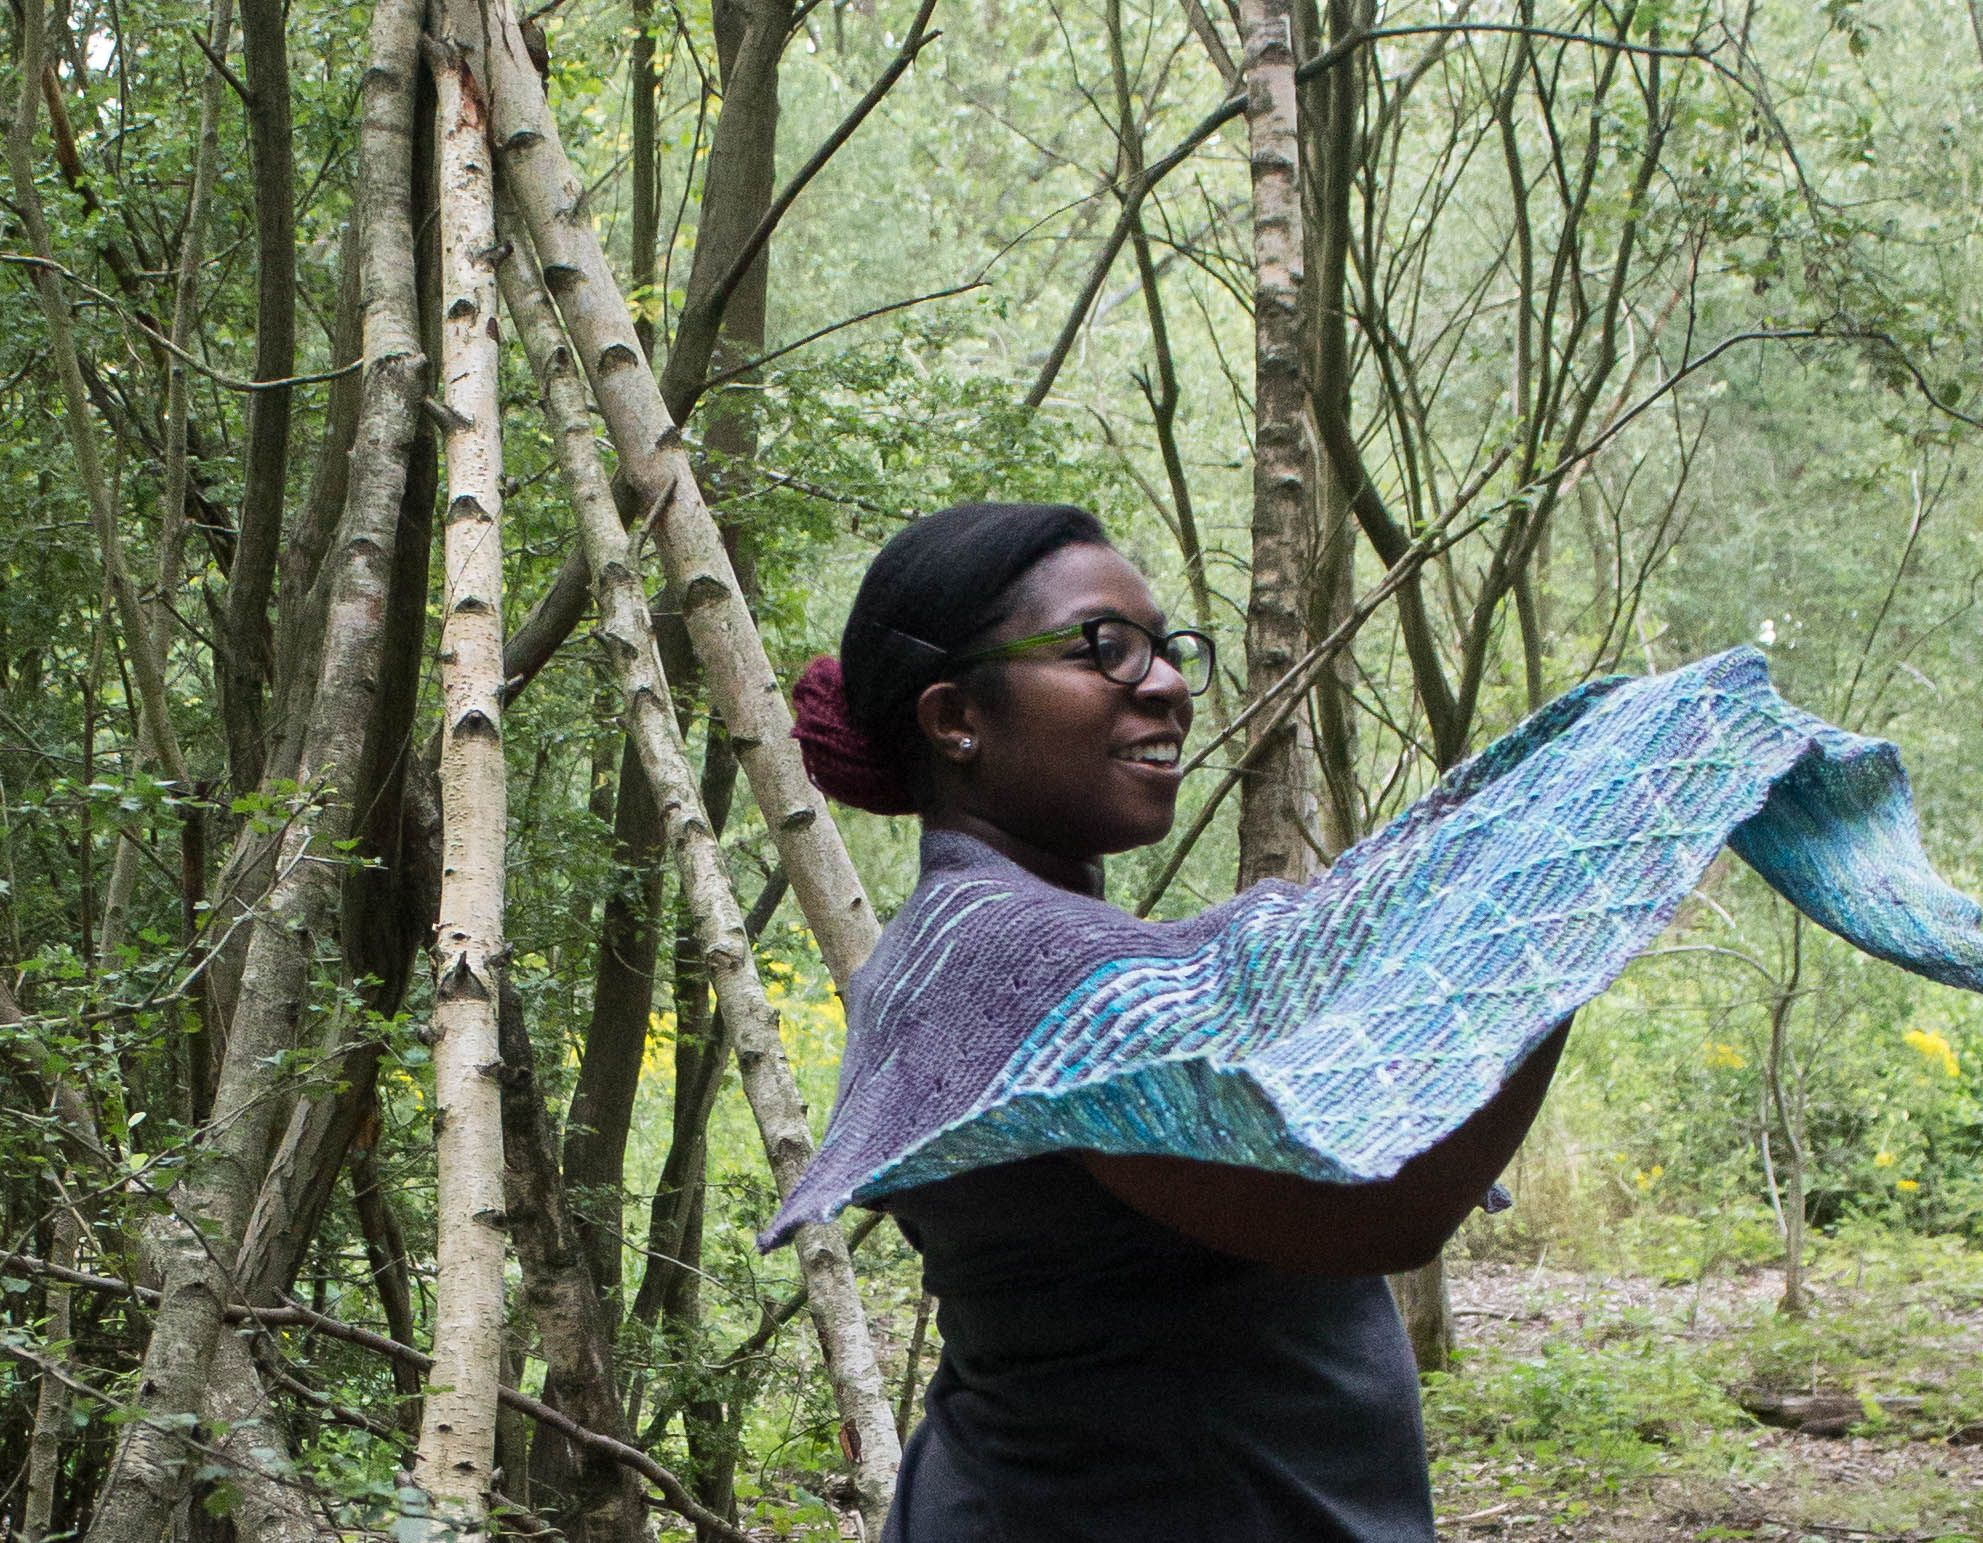 Image of a black woman smiling, holding the edge of a shawl as it floats in the wind, with the rest wrapped around her. Showing off the slipped stitch patterning and cables.